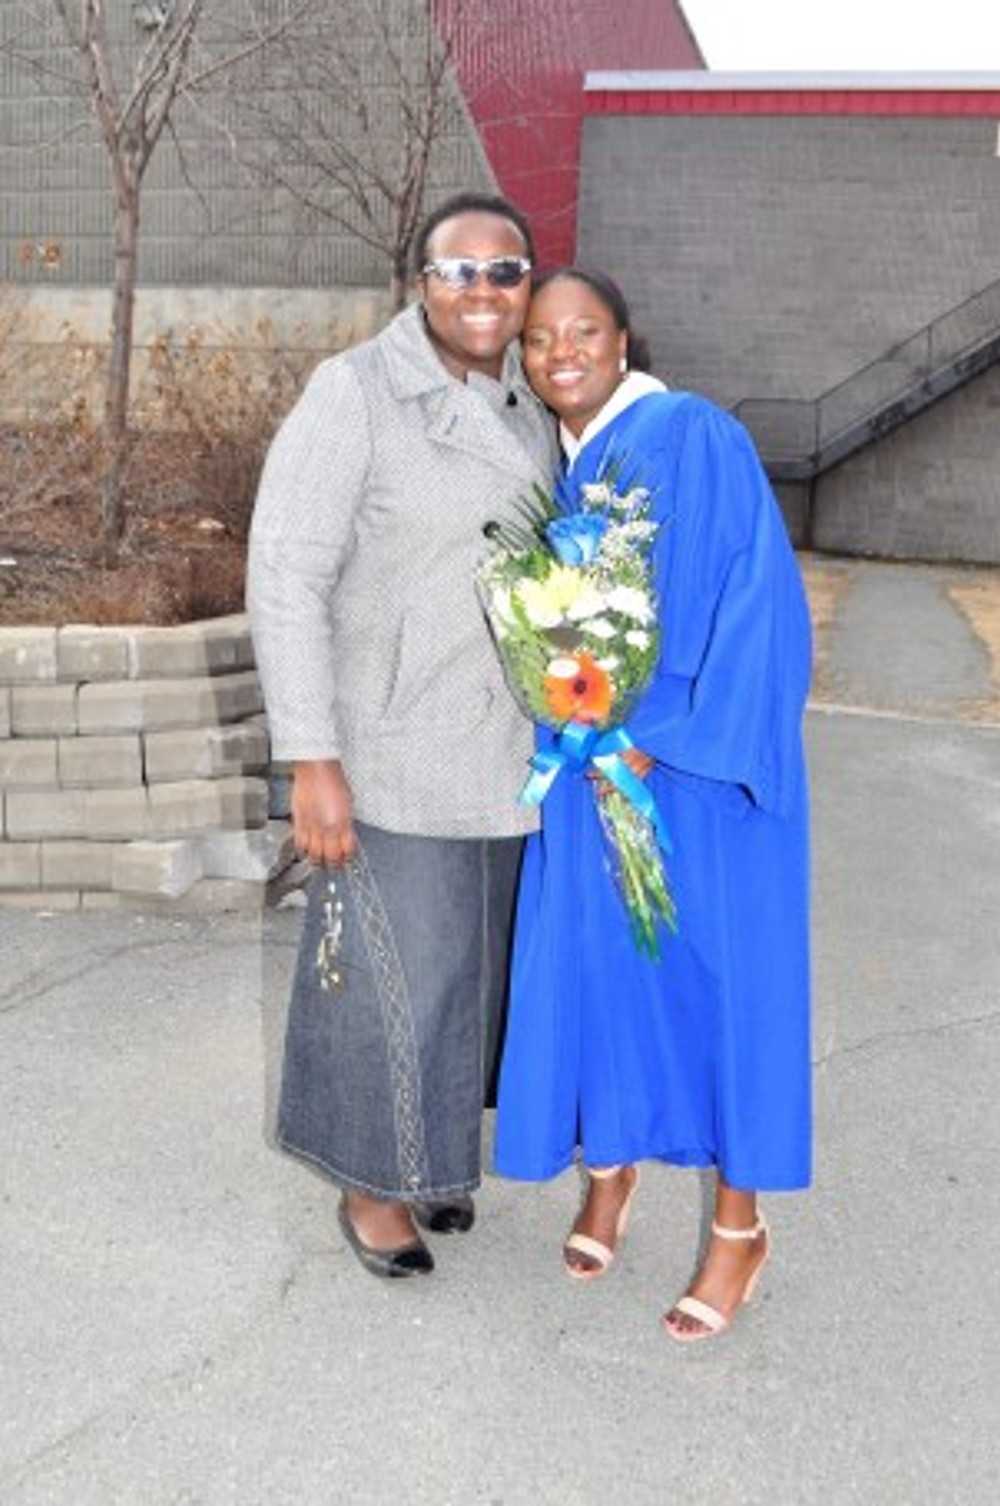 Me and my stepdaughter on her college graduation day.